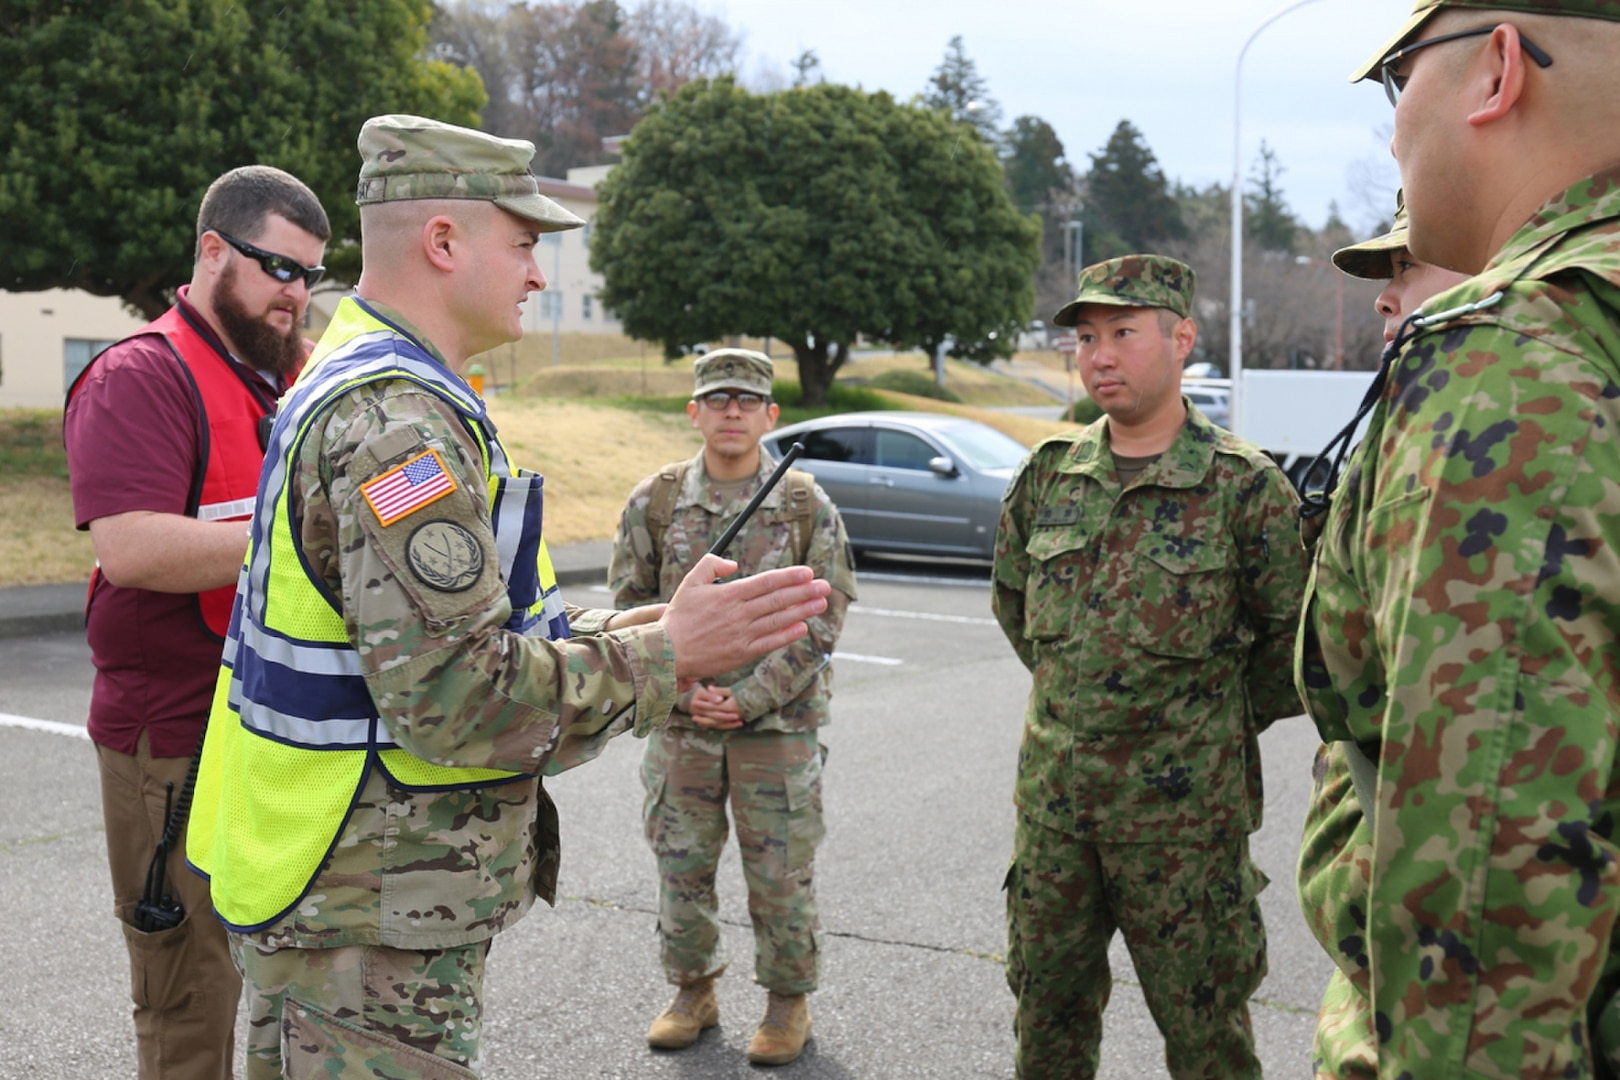 U.S. Army Garrison Japan Conducts HADR Evacuation Drill with Host-nation Partners